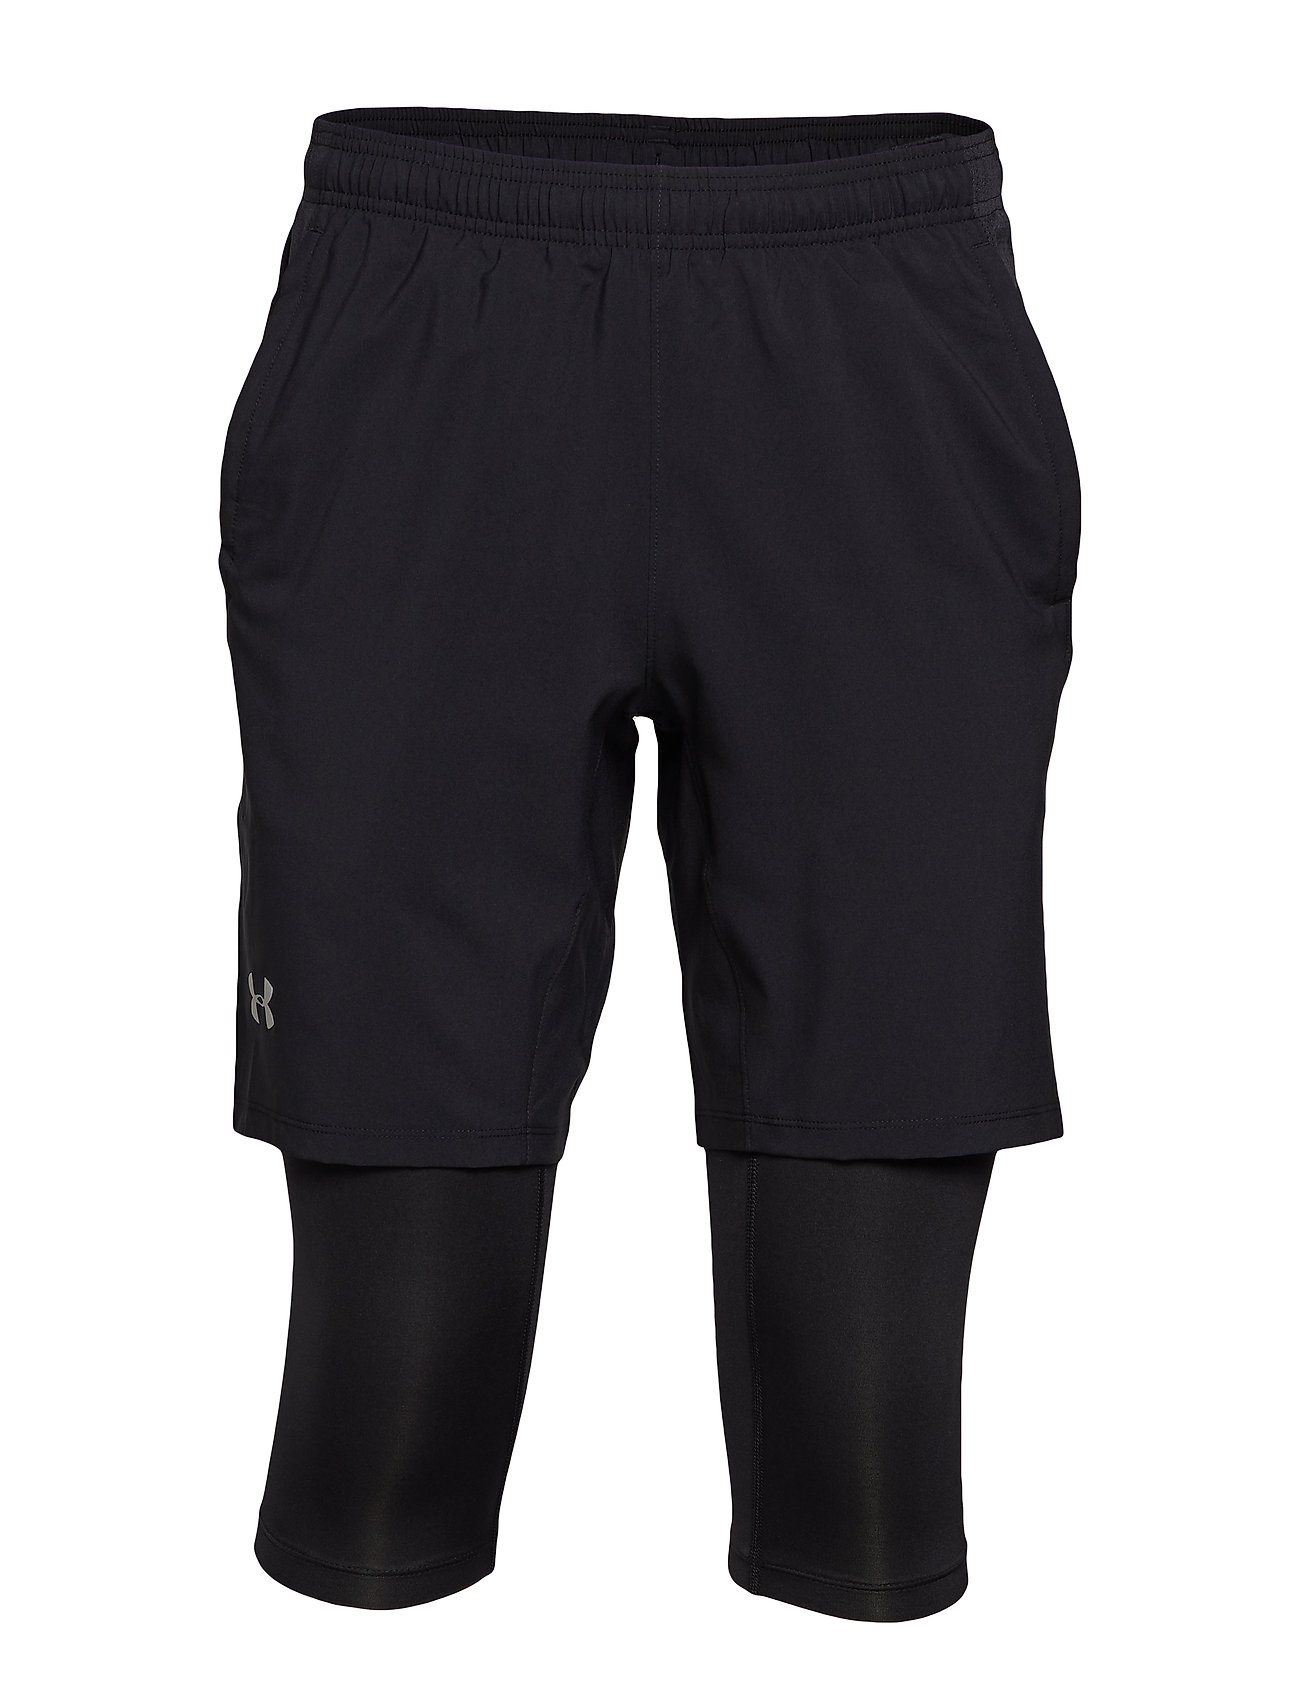 Under Armour UA LAUNCH SW 2-IN-1 LONG SHORT - BLACK